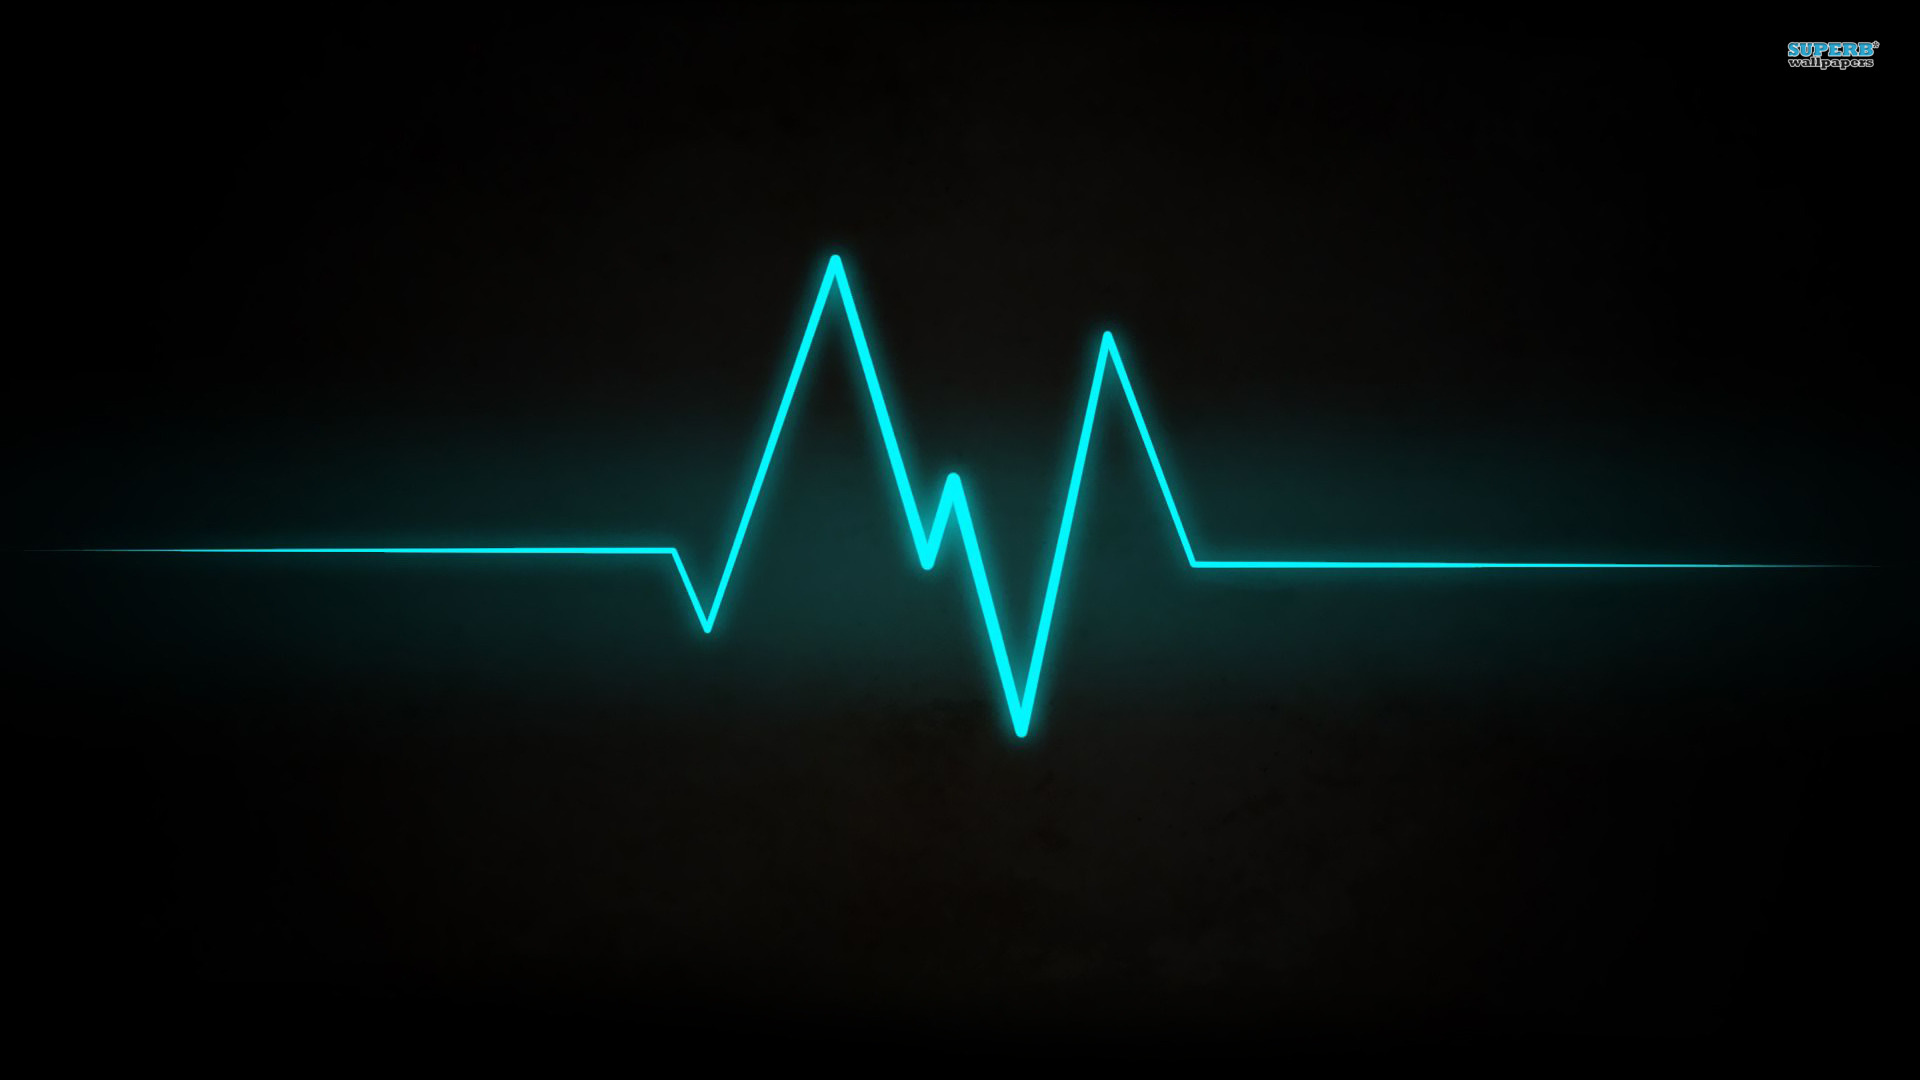 HQ Heartbeat Wallpapers   File 110.42Kb